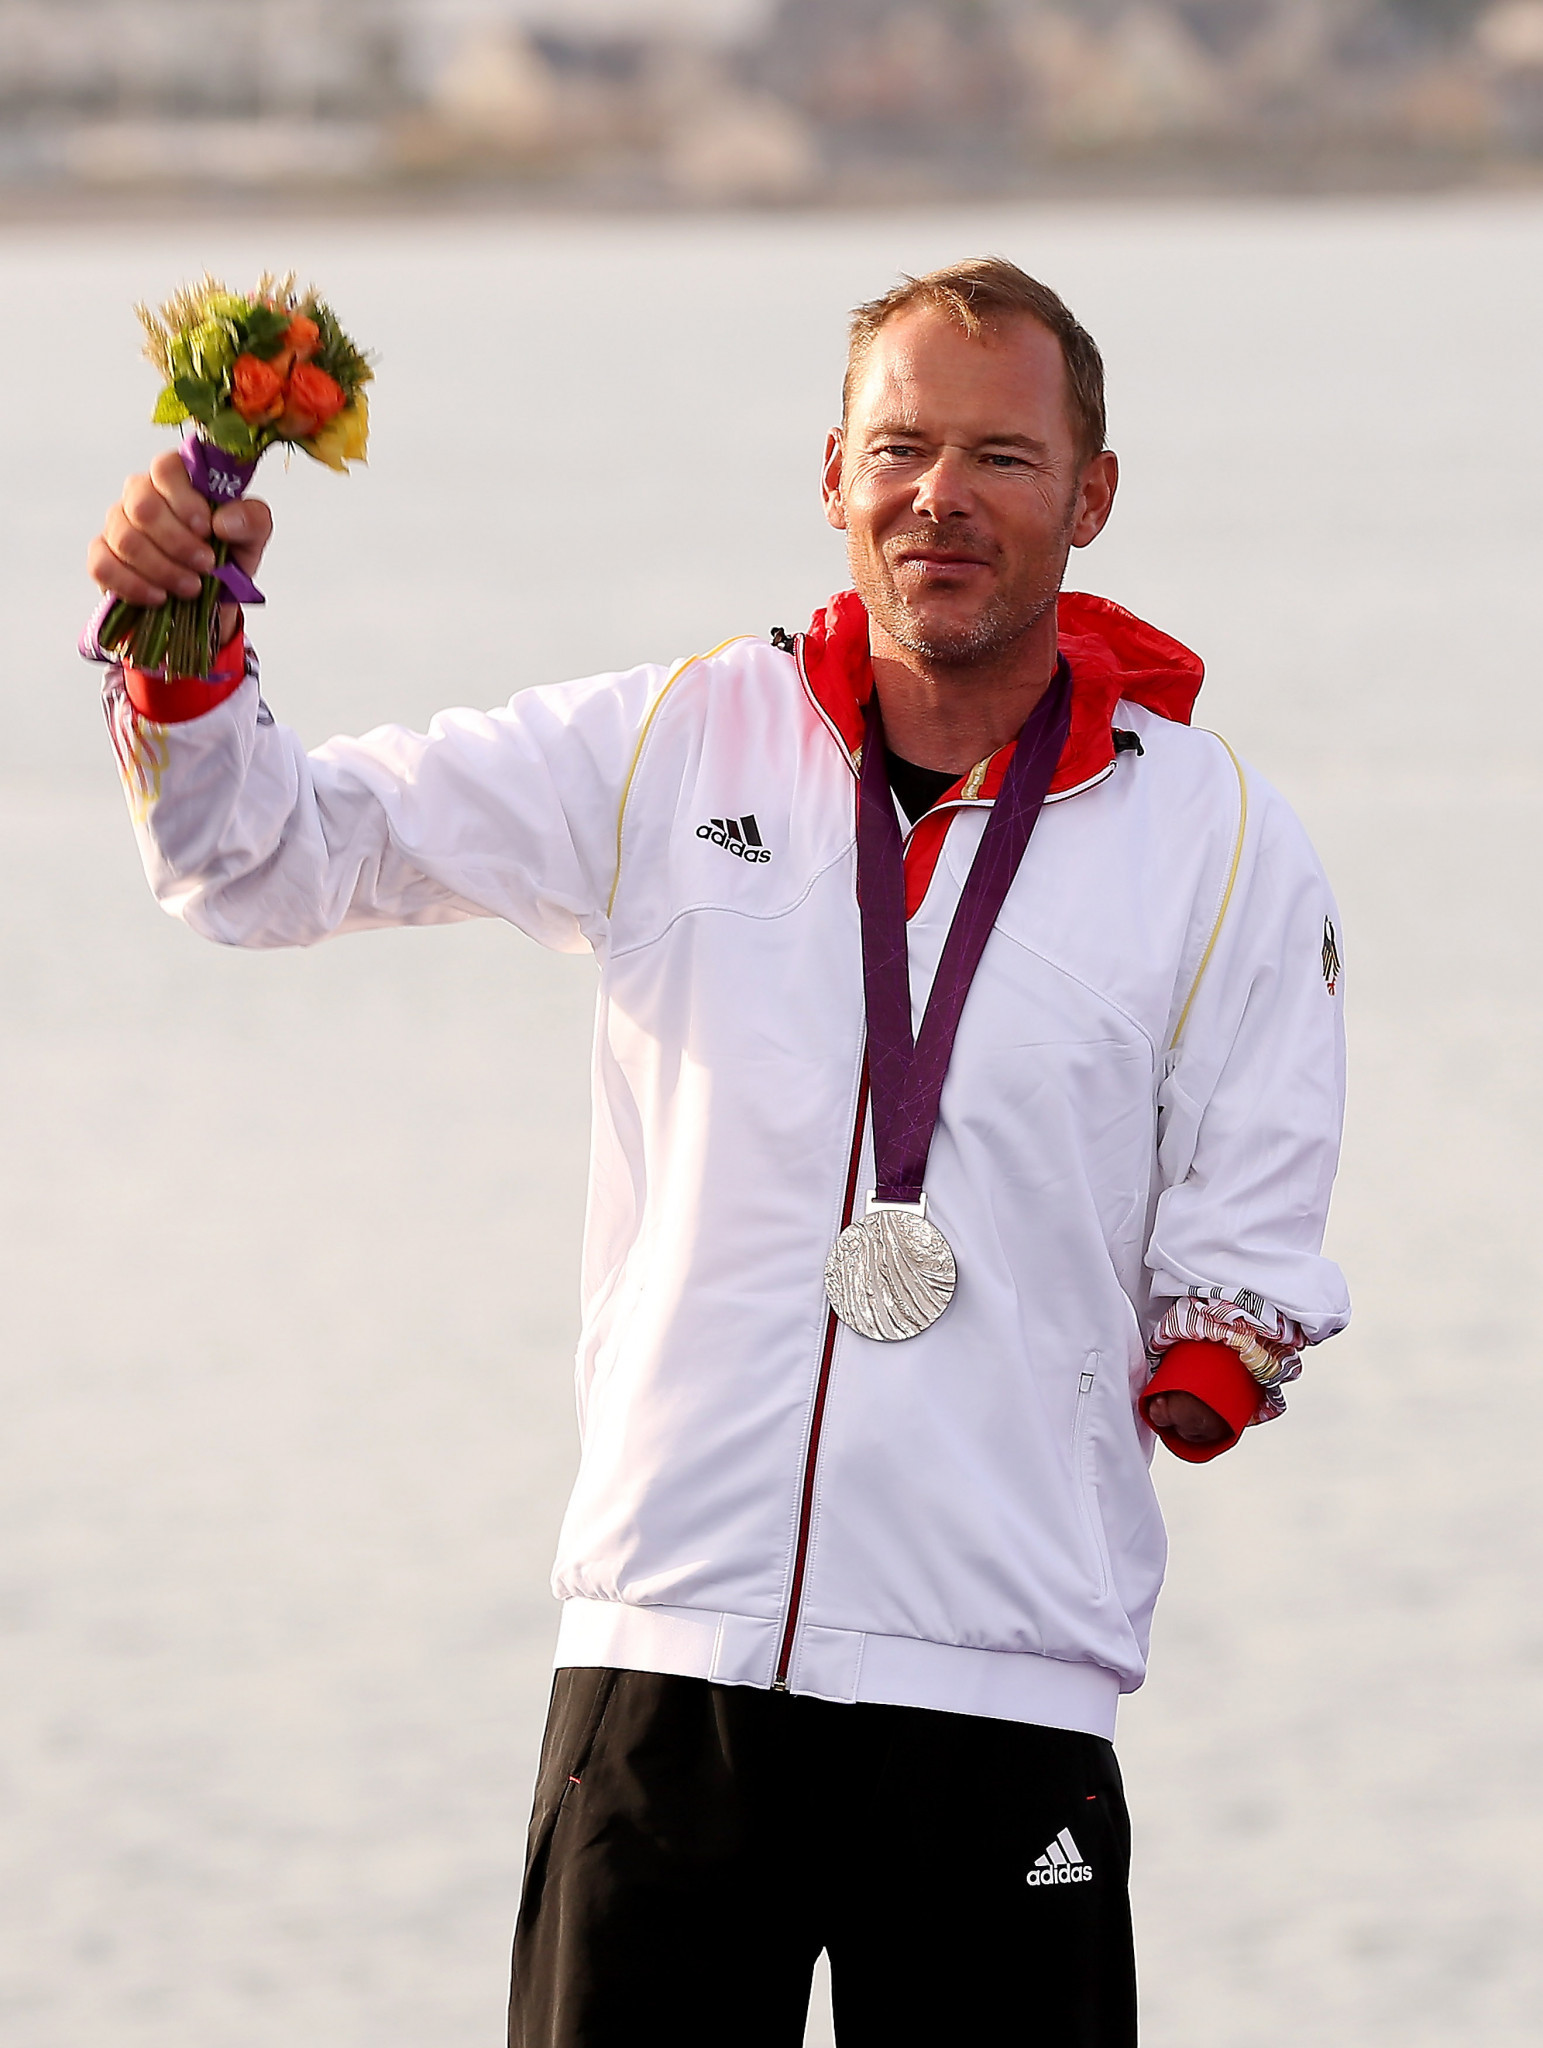 Germany's Heiko Kroger, who won Paralympic gold in 2000, picked up silver at London 2012 ©Getty Images